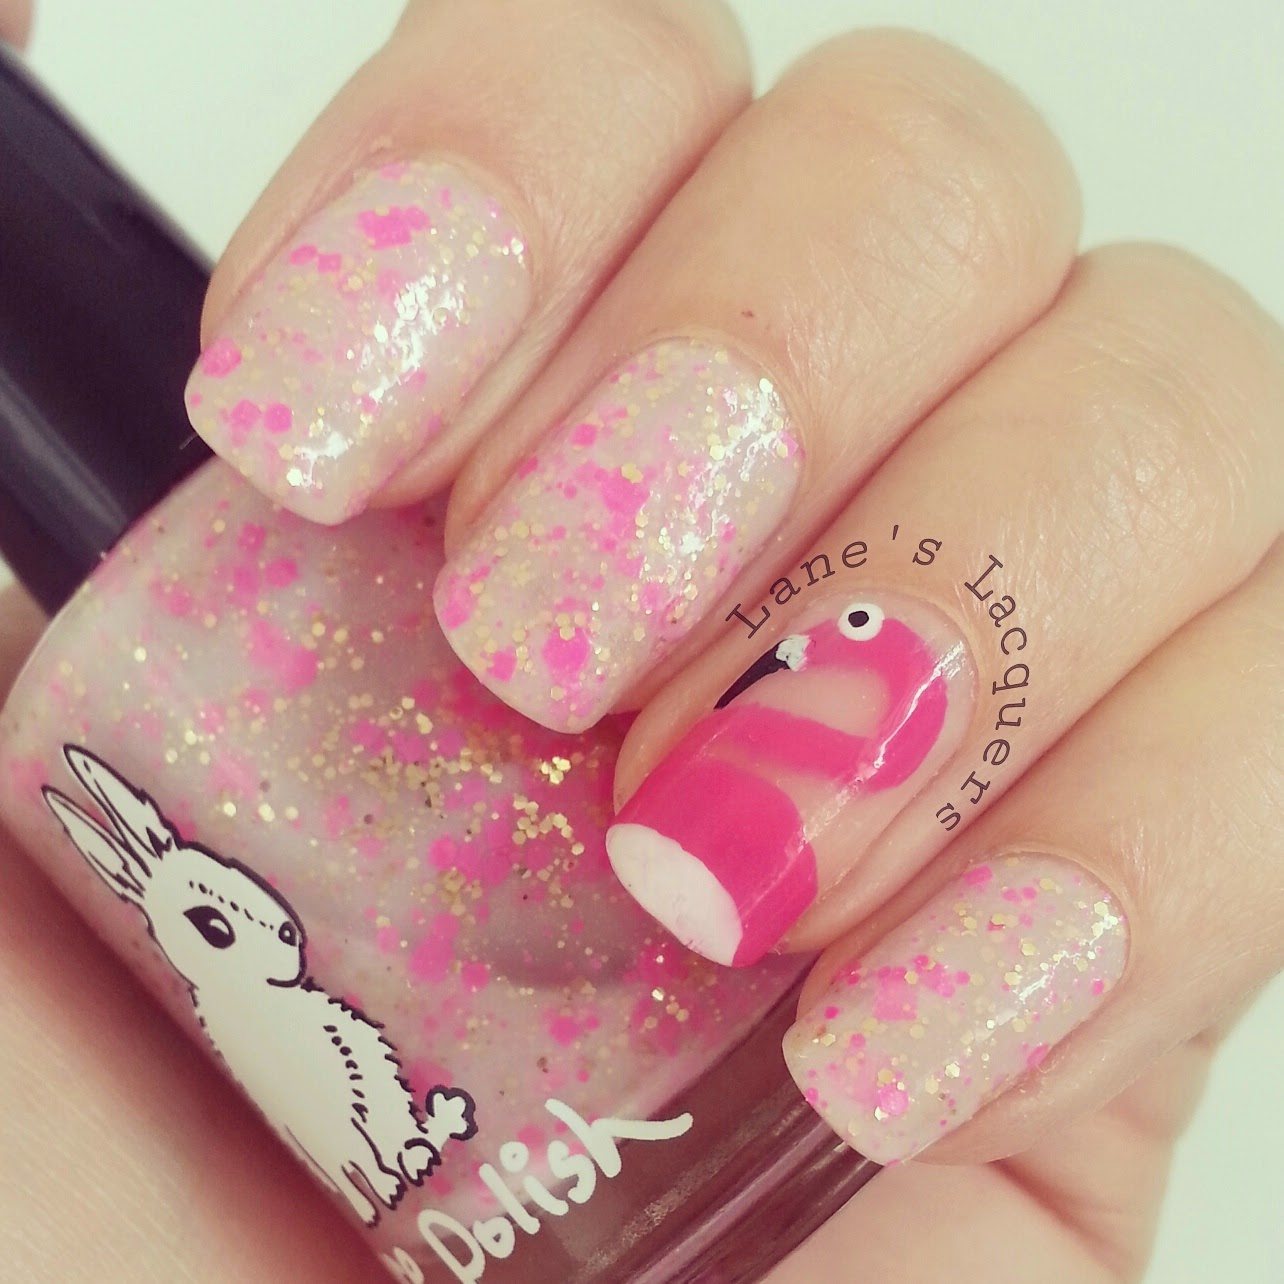 hare-polish-flight-of-the-flamingos-nail-art (2)